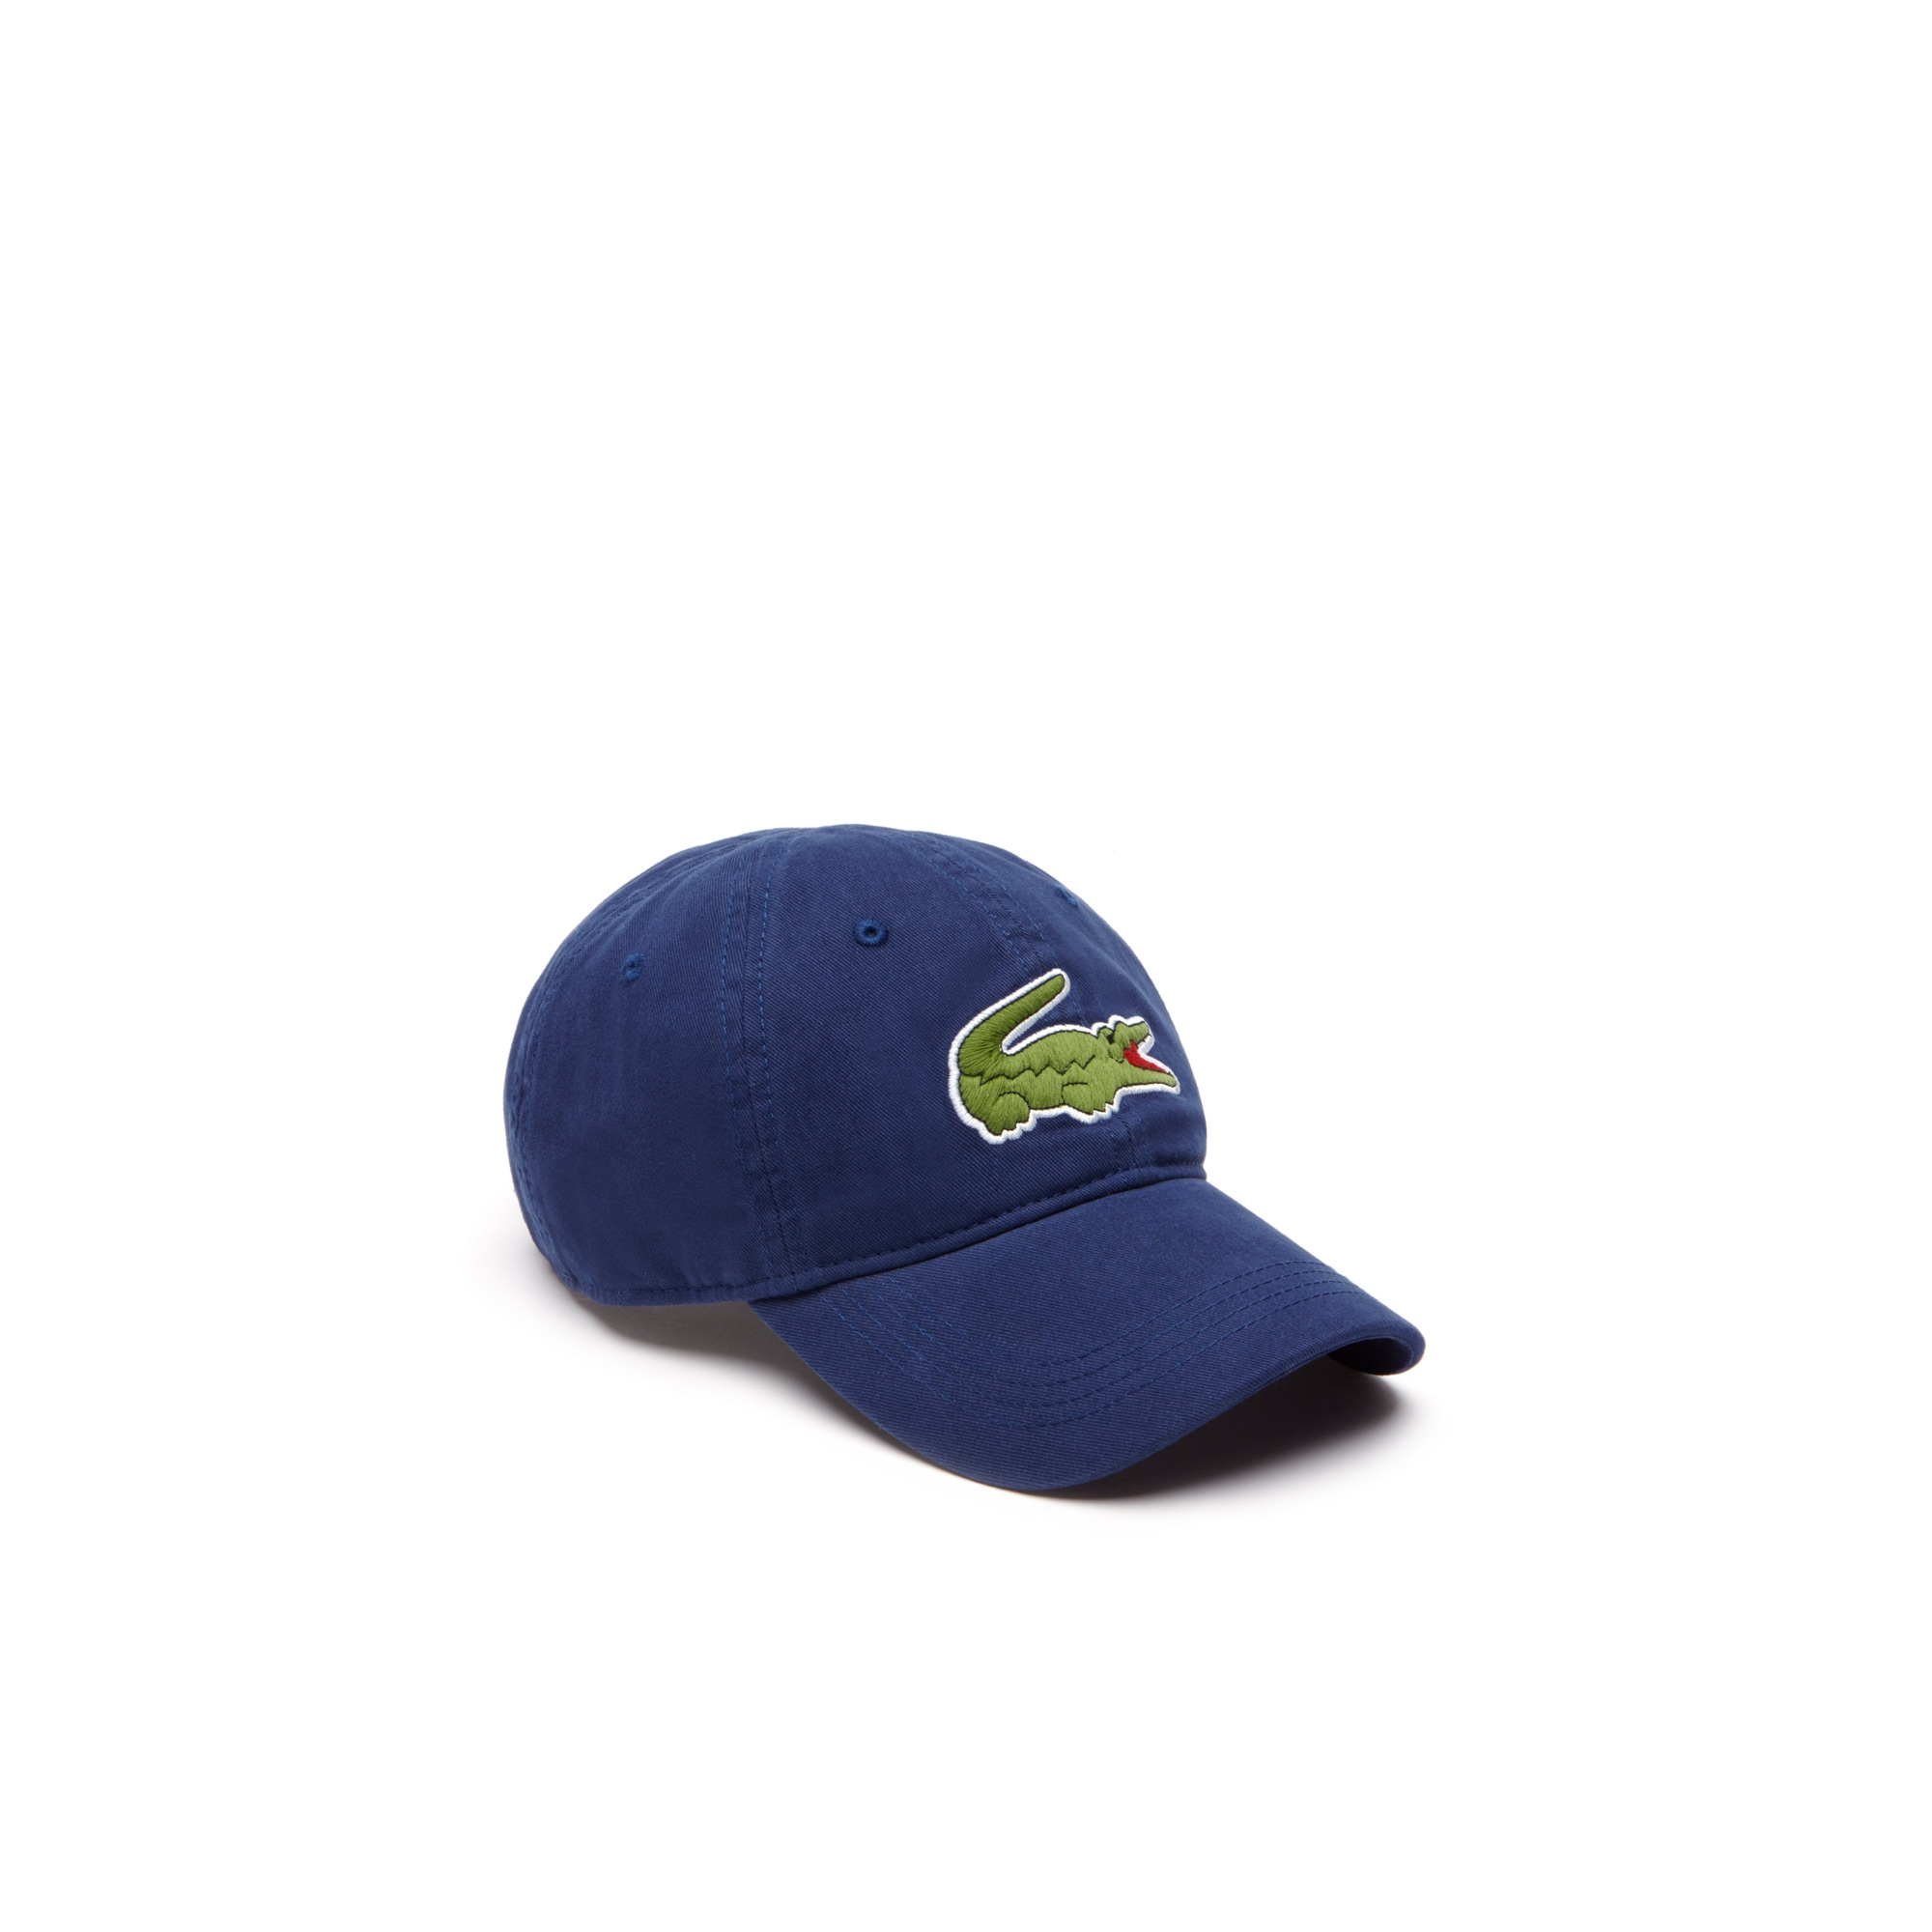 라코스테 Lacoste Mens Big Croc Gabardine Cap,navy blue